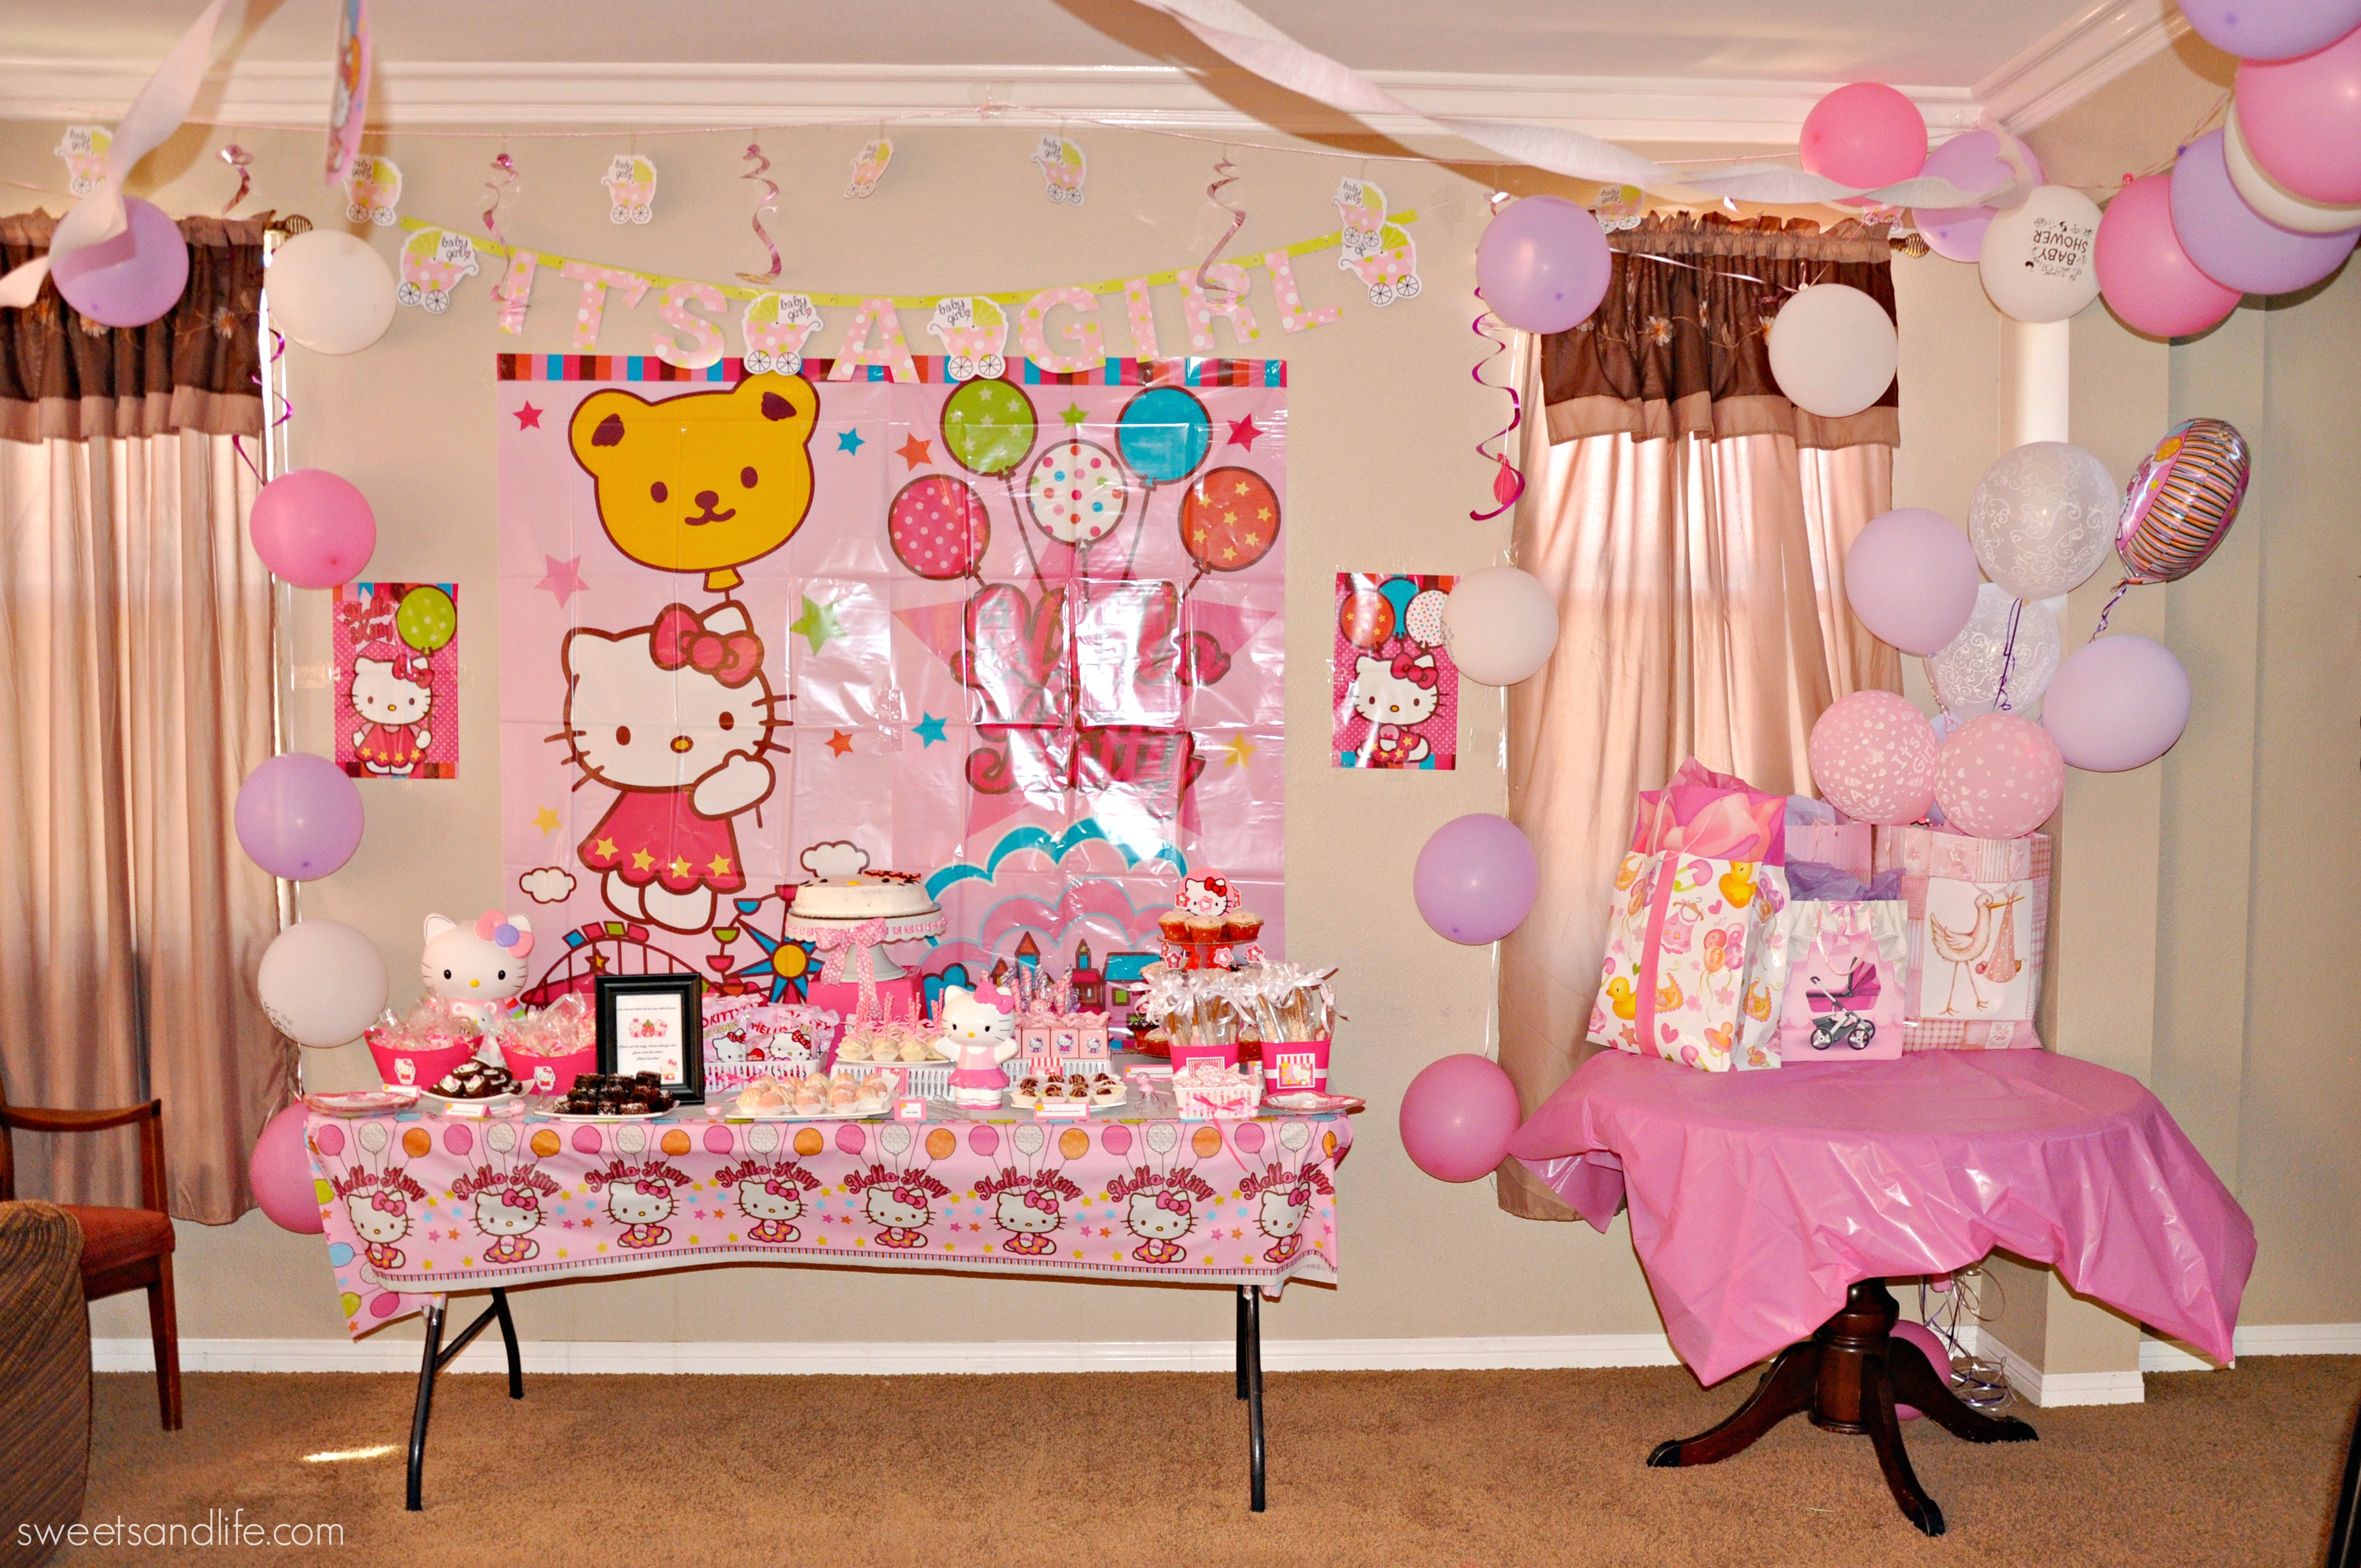 Baby shower – Sweets and Life